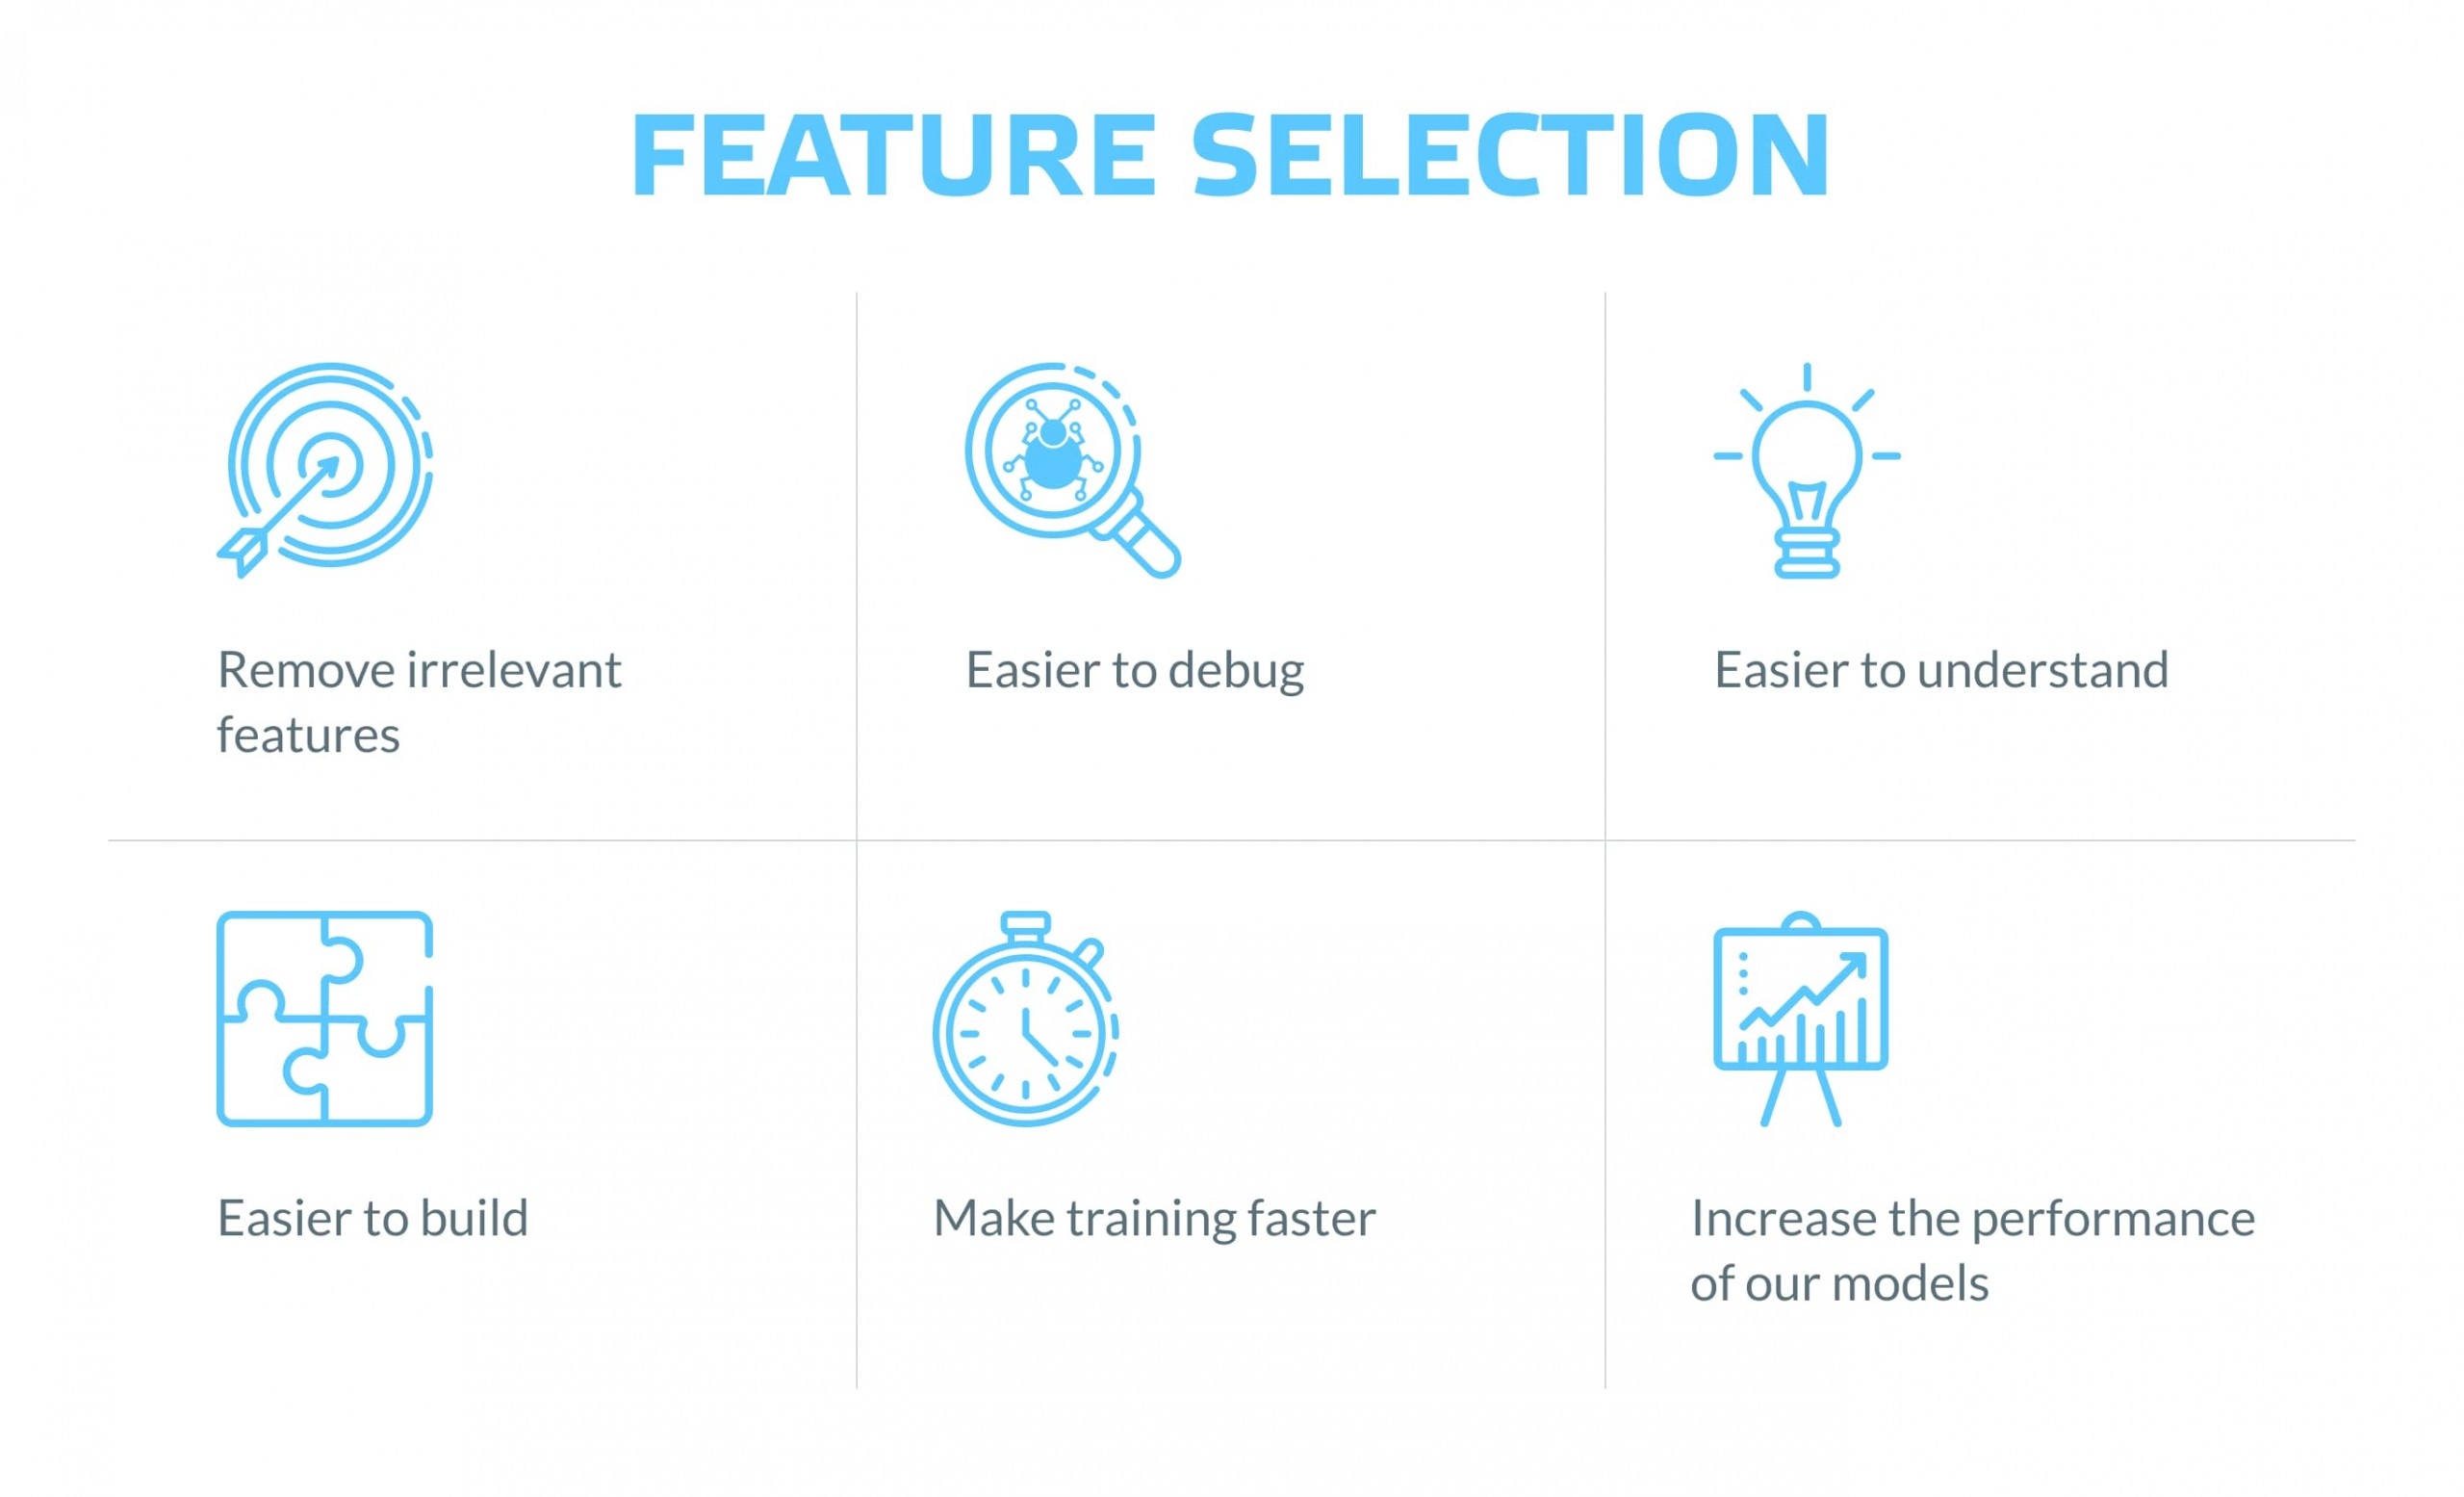 What are features in machine learning?